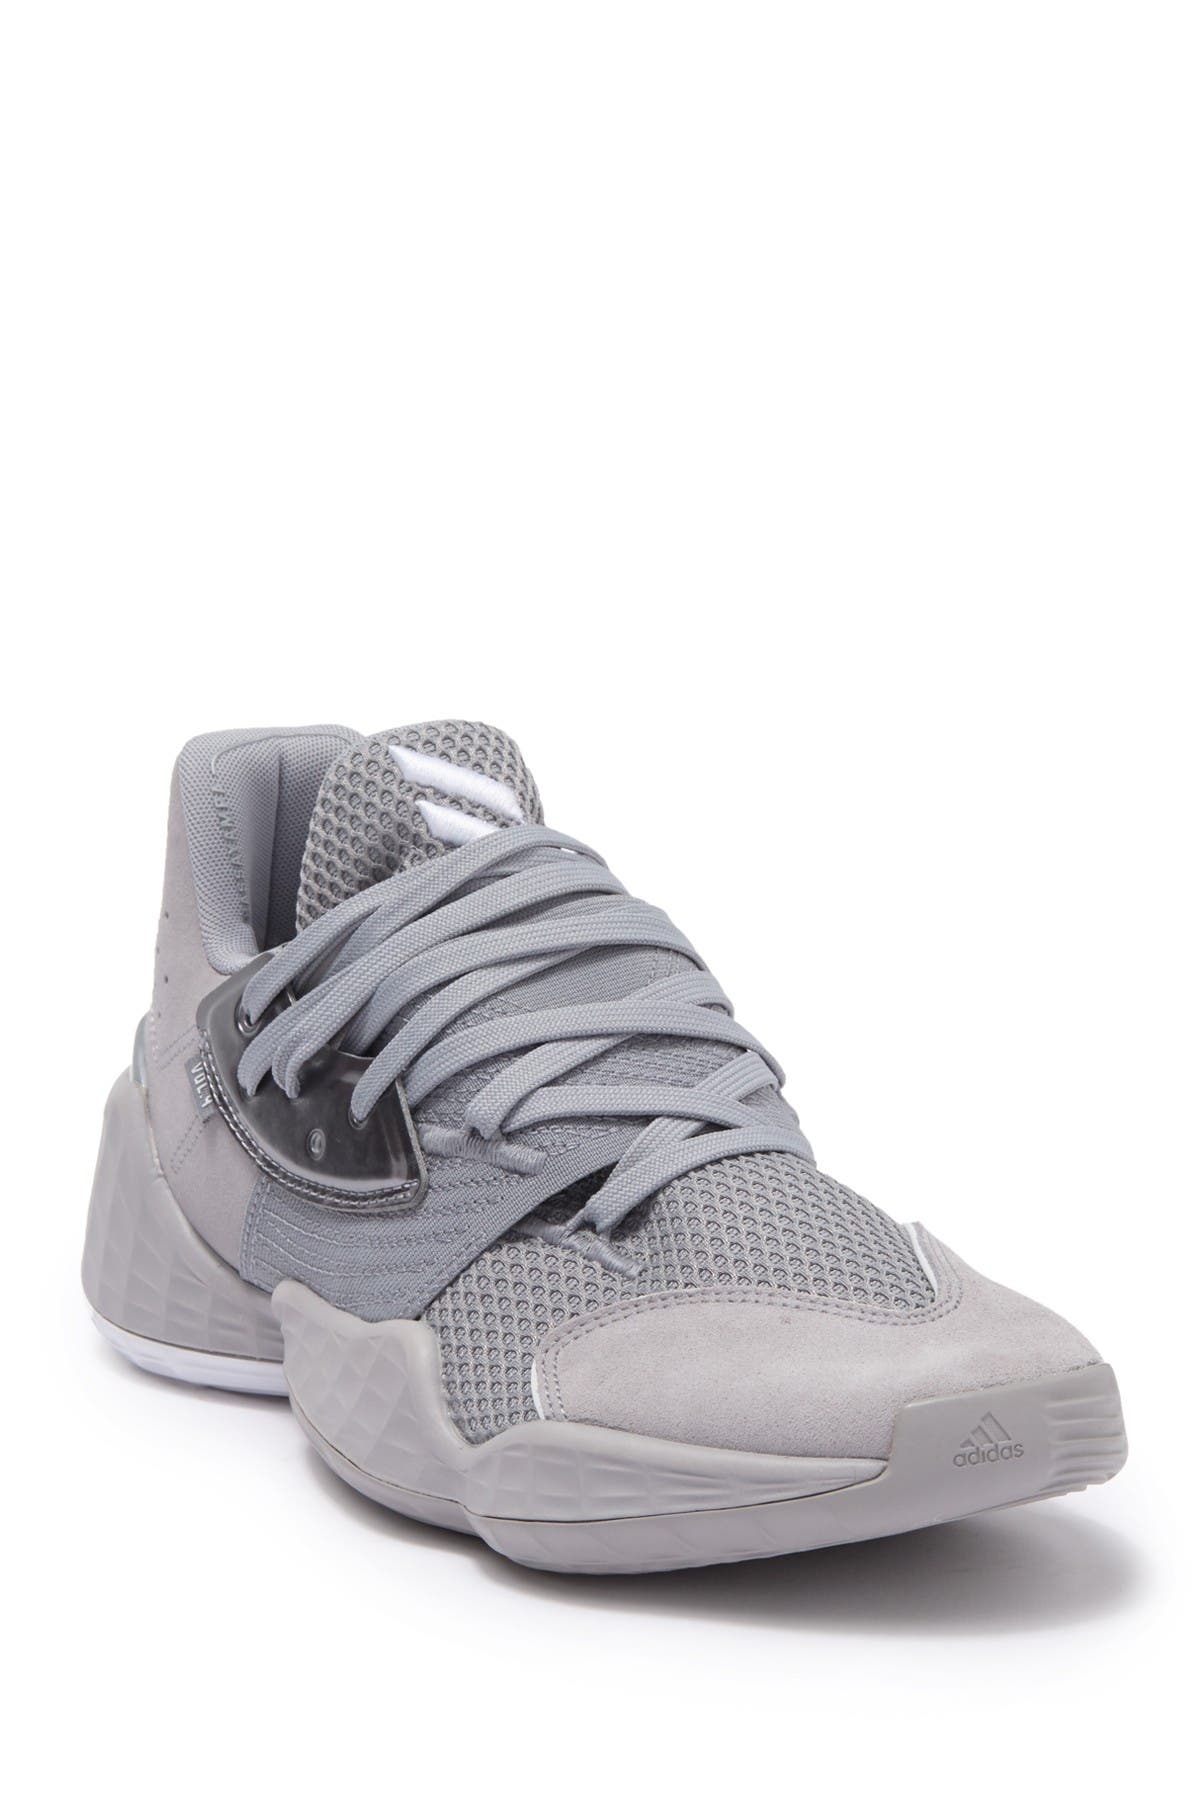 Image of adidas Harden Vol. 4 Sneakers